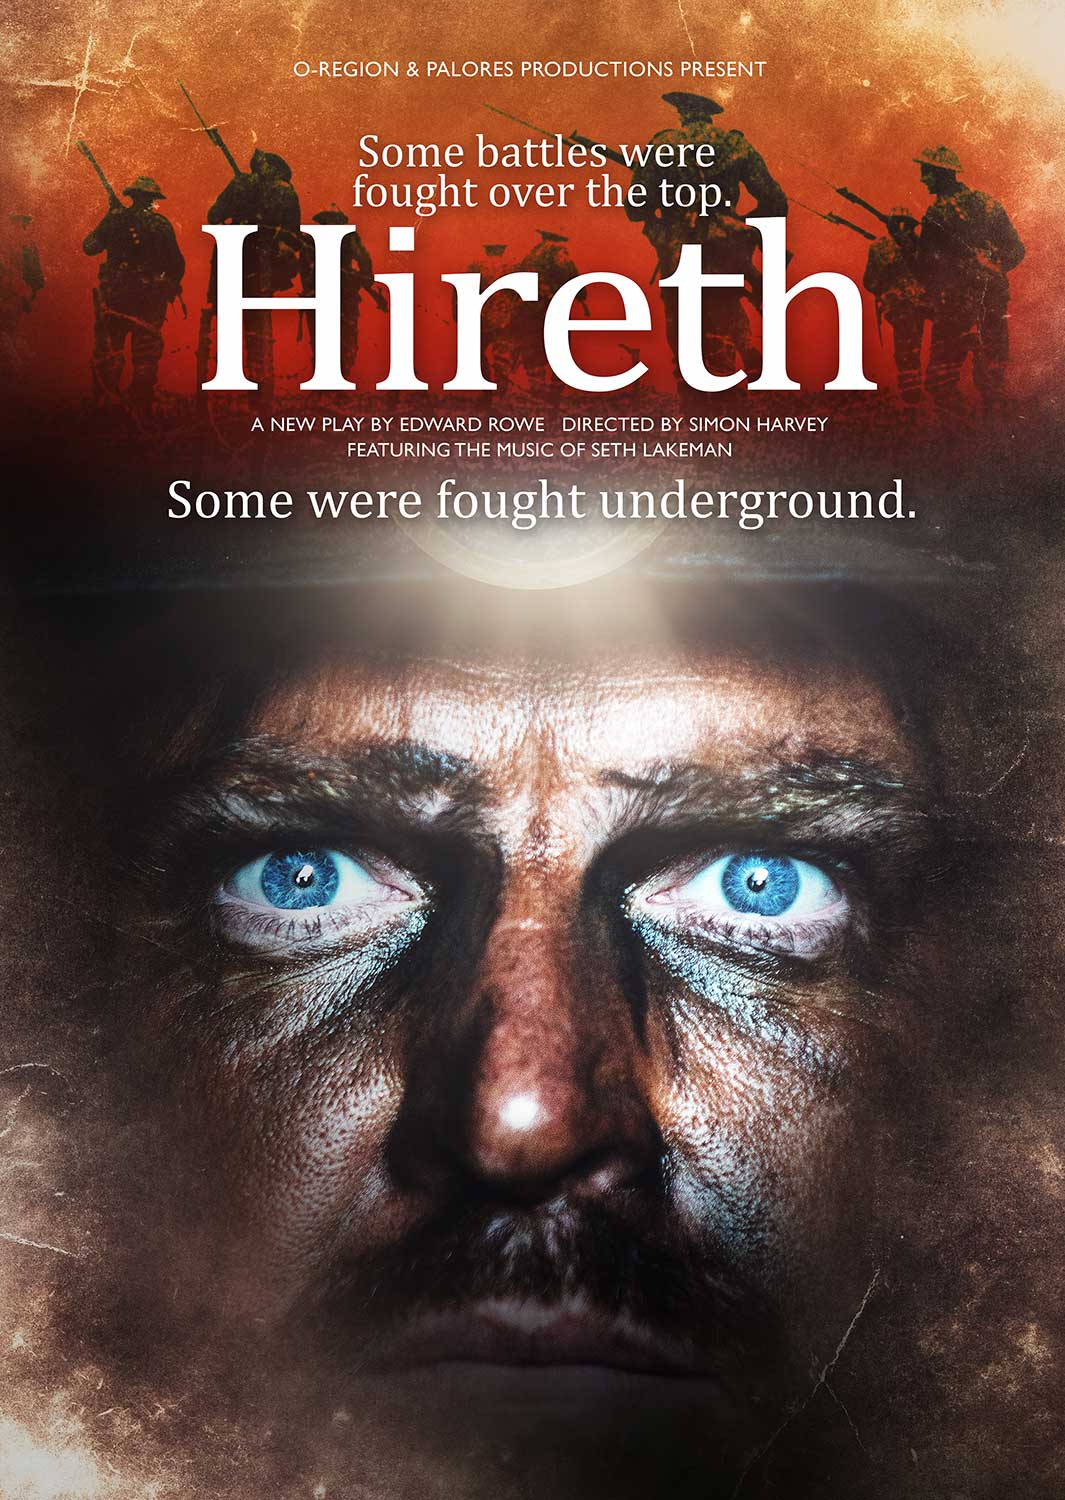 hireth-title-only